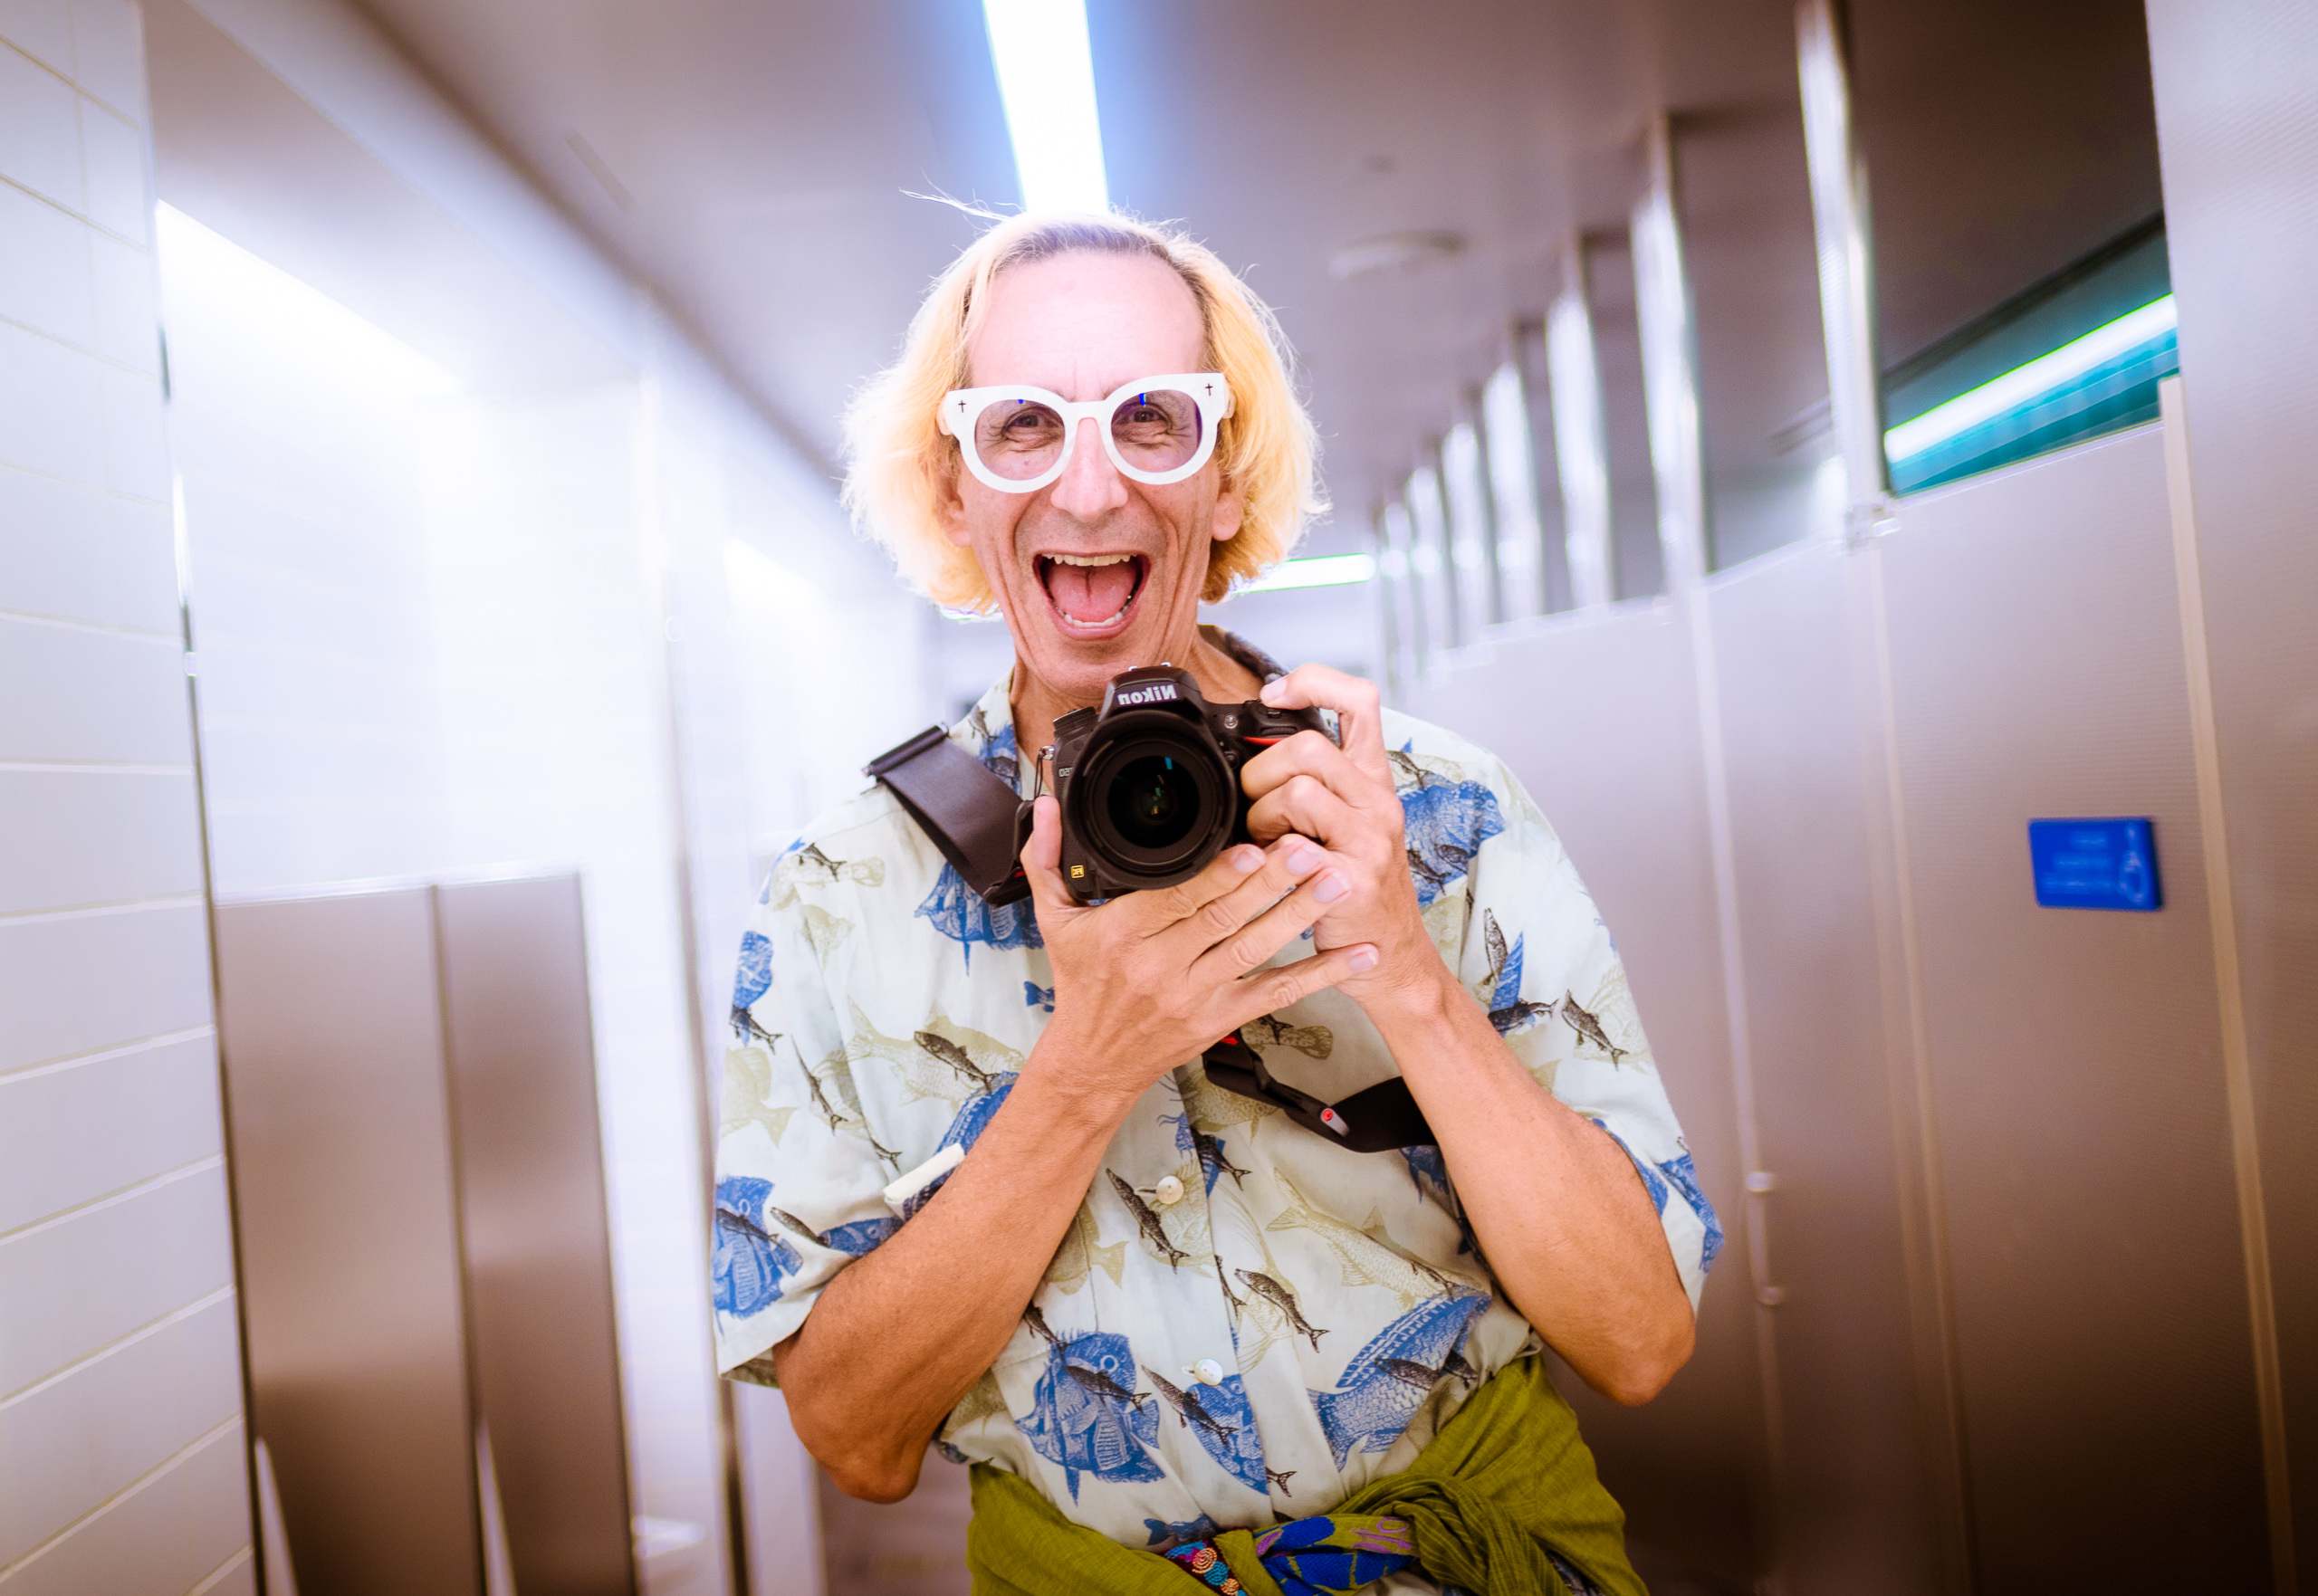 a selfie in the men's room mirror at Los Angeles International Airport (LAX) Terminal 1 - Southwest Airlines